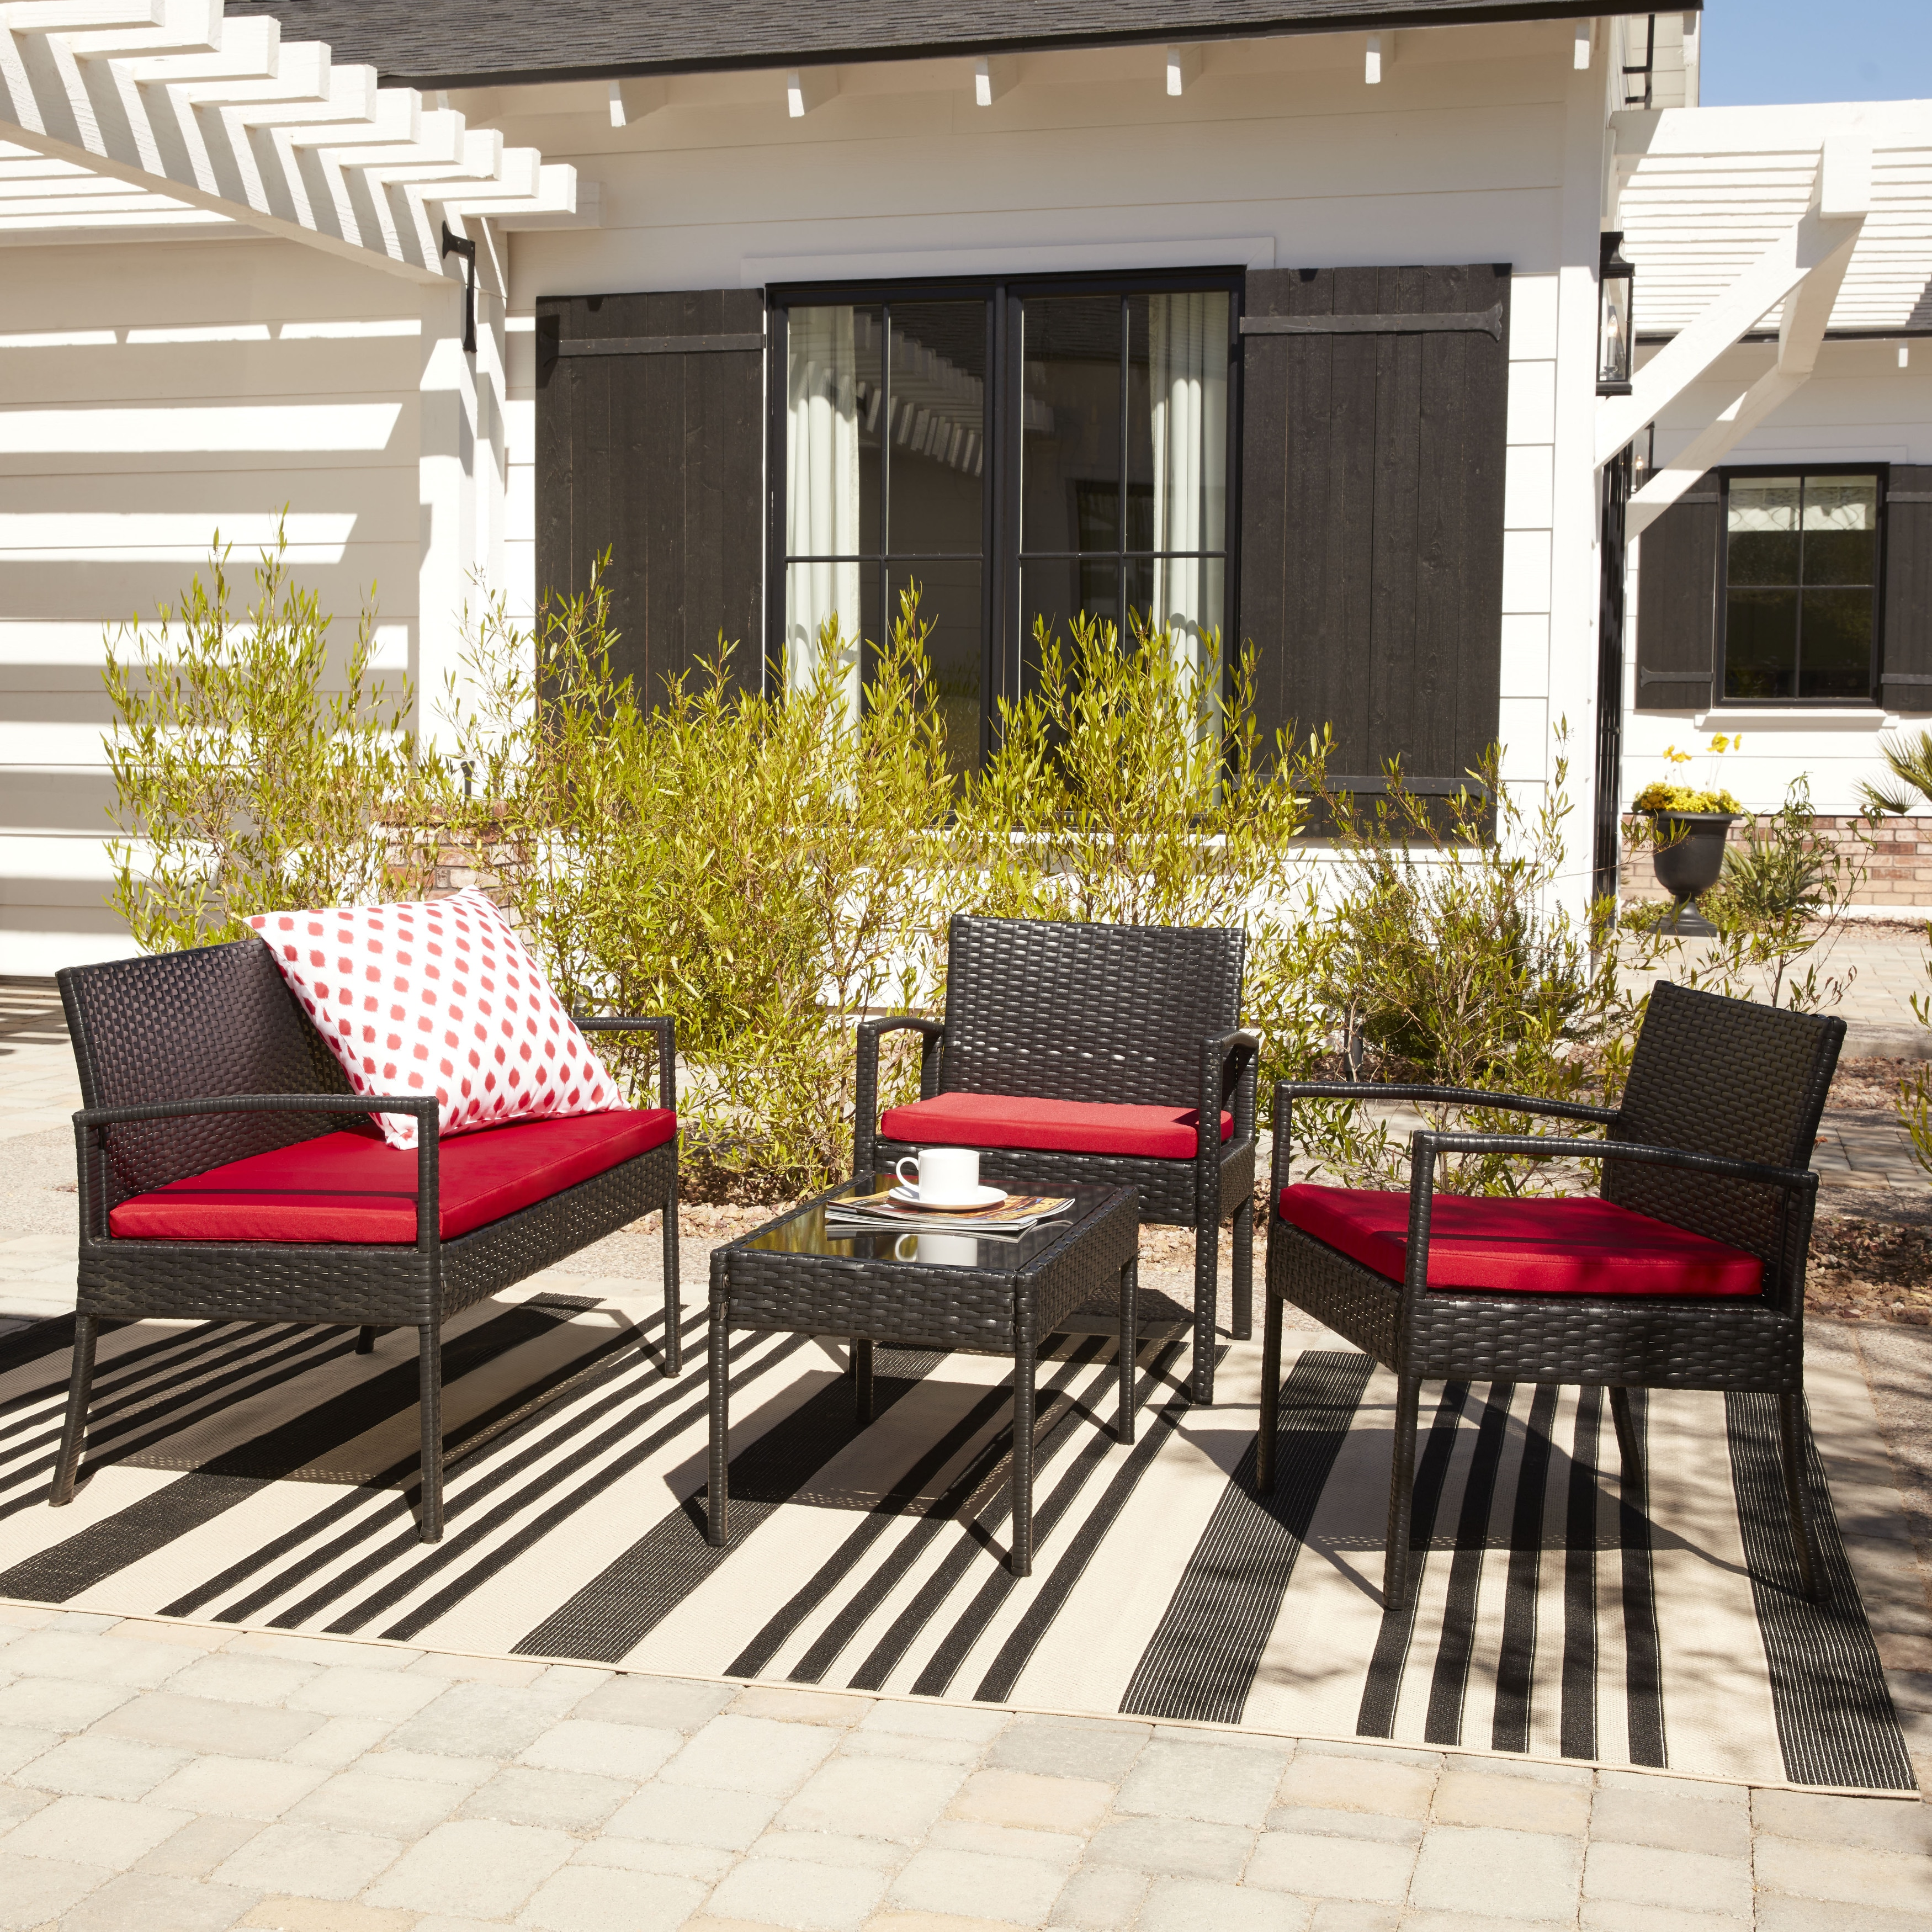 4 Piece Patio Conversation Set With Red